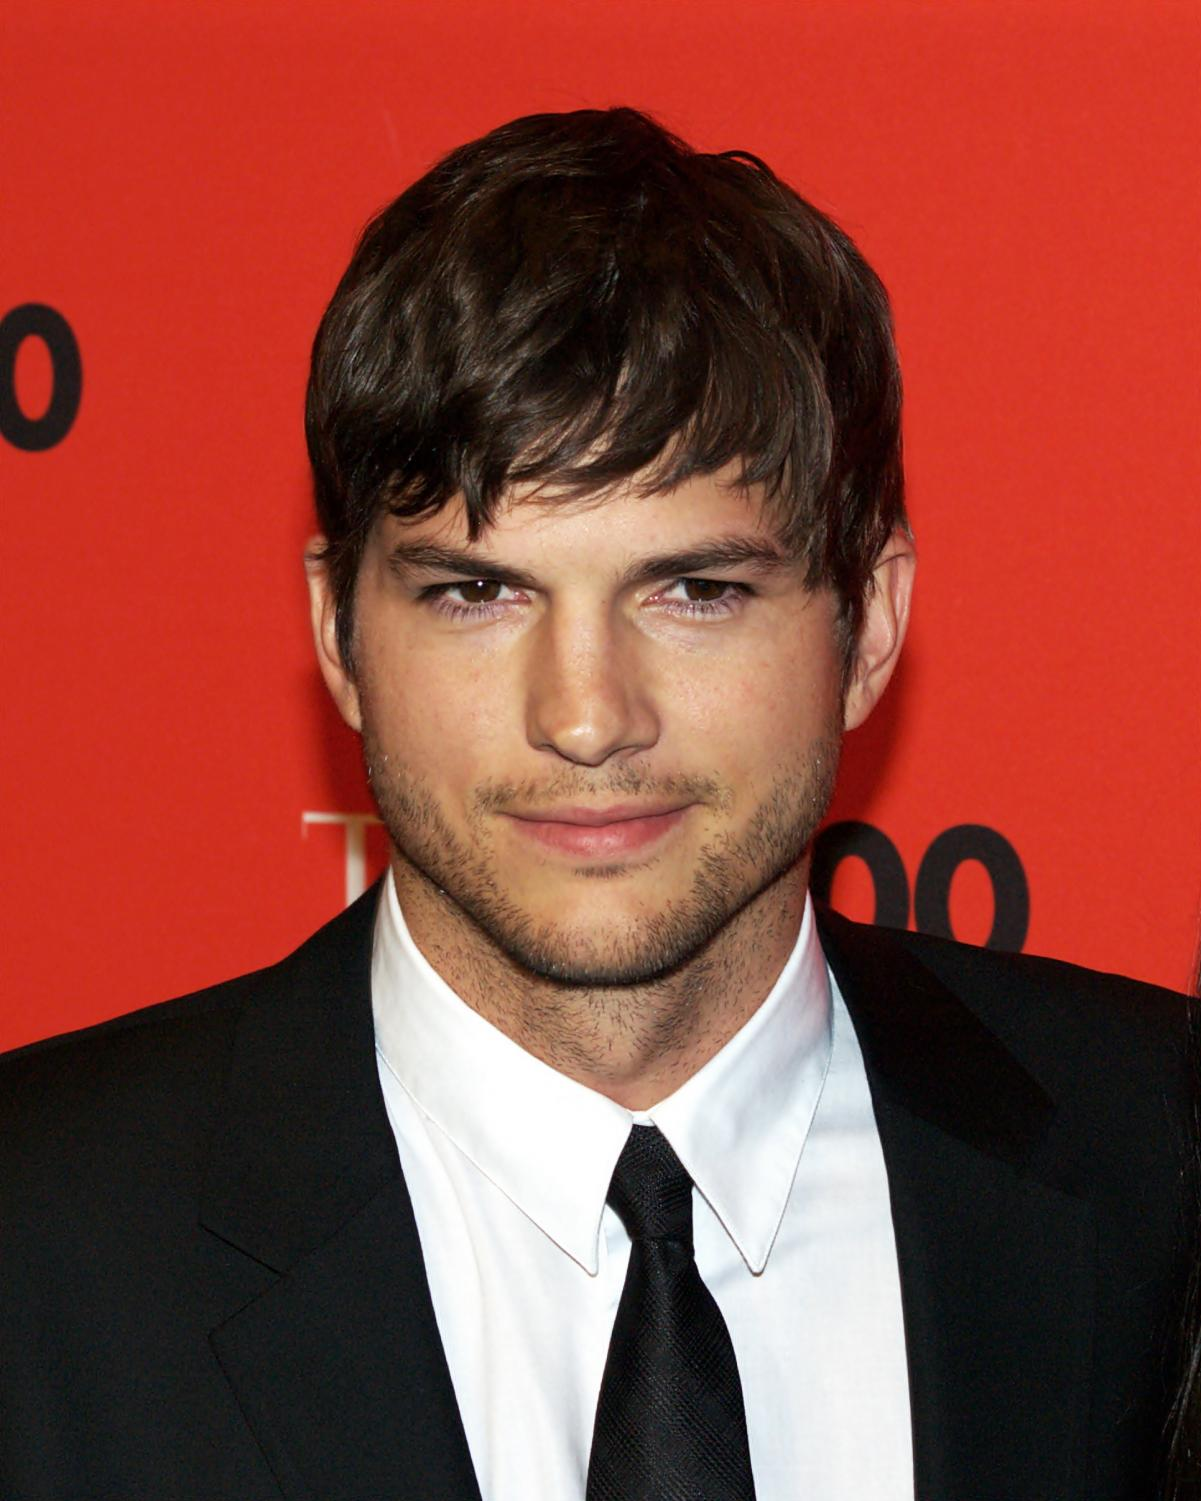 Kutcher's support for Israeli soldiers enraged Palestinian supporters.